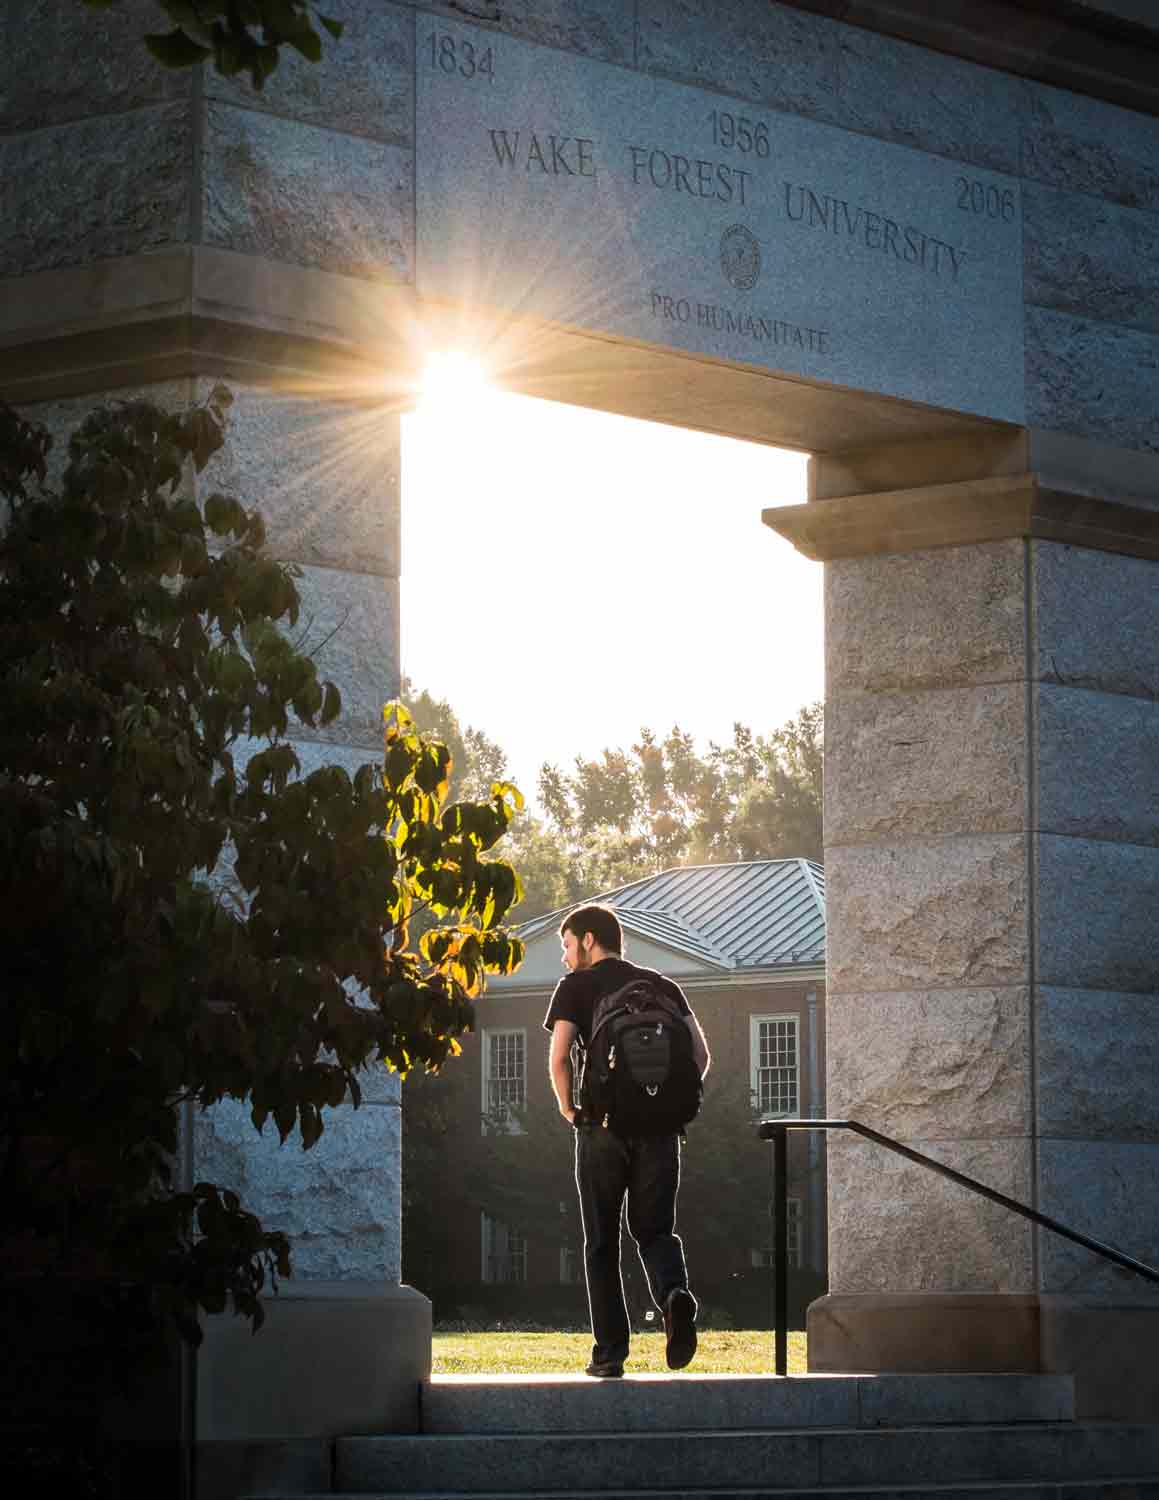 A student walks through the arch on Hearn Plaza on the campus of Wake Forest University